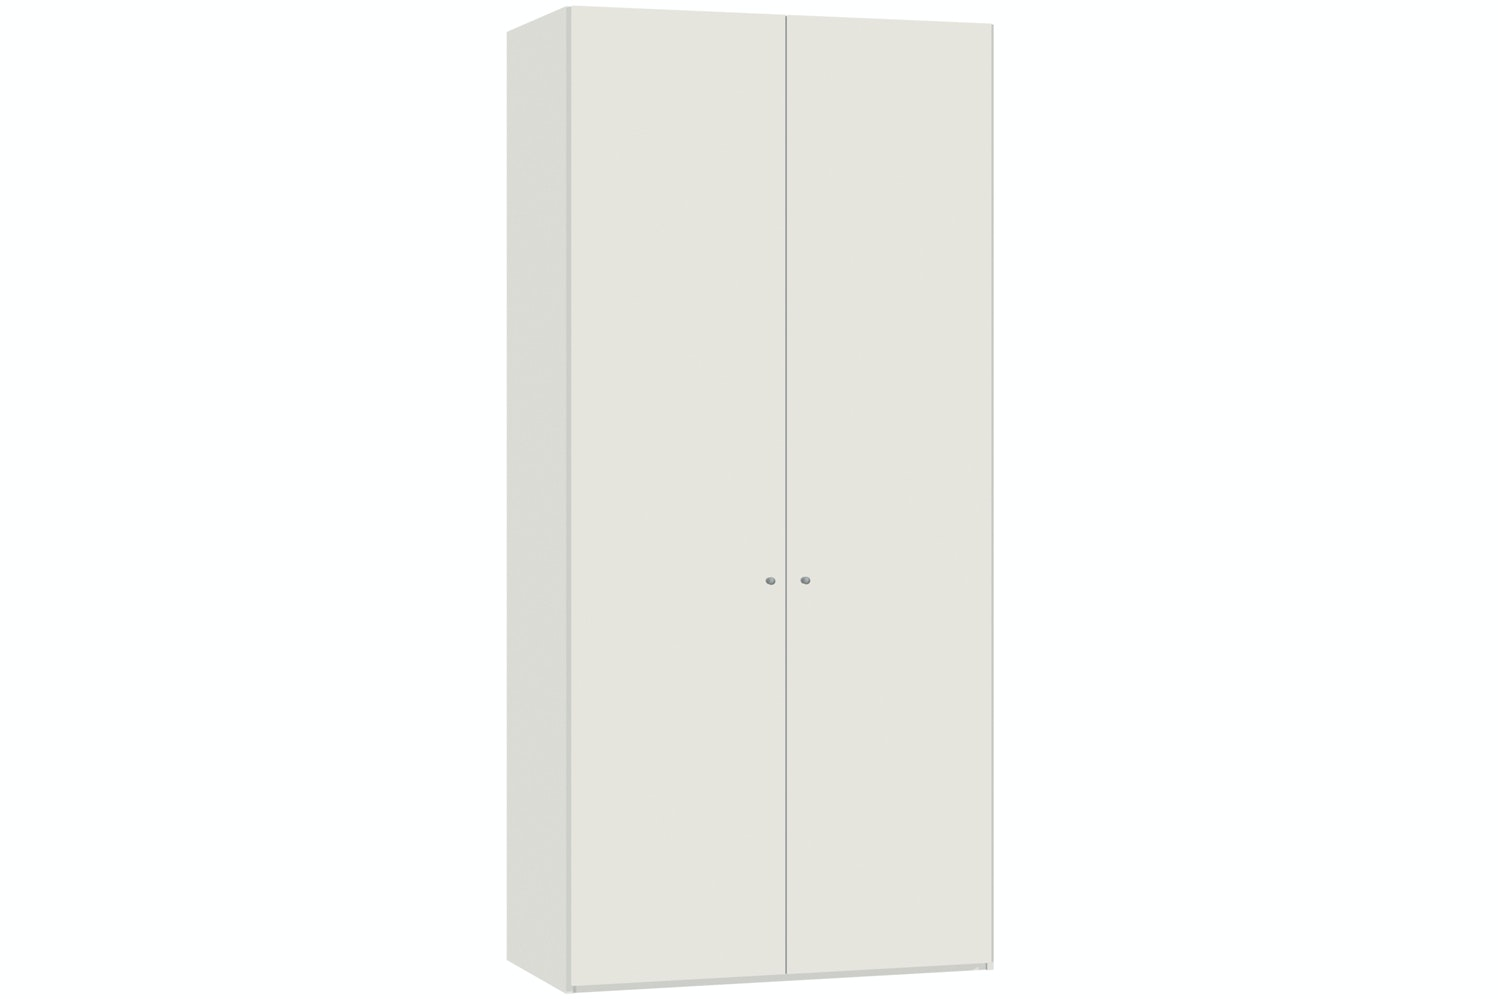 Emer Hinged 2 Door Wardrobe 102Cm | White